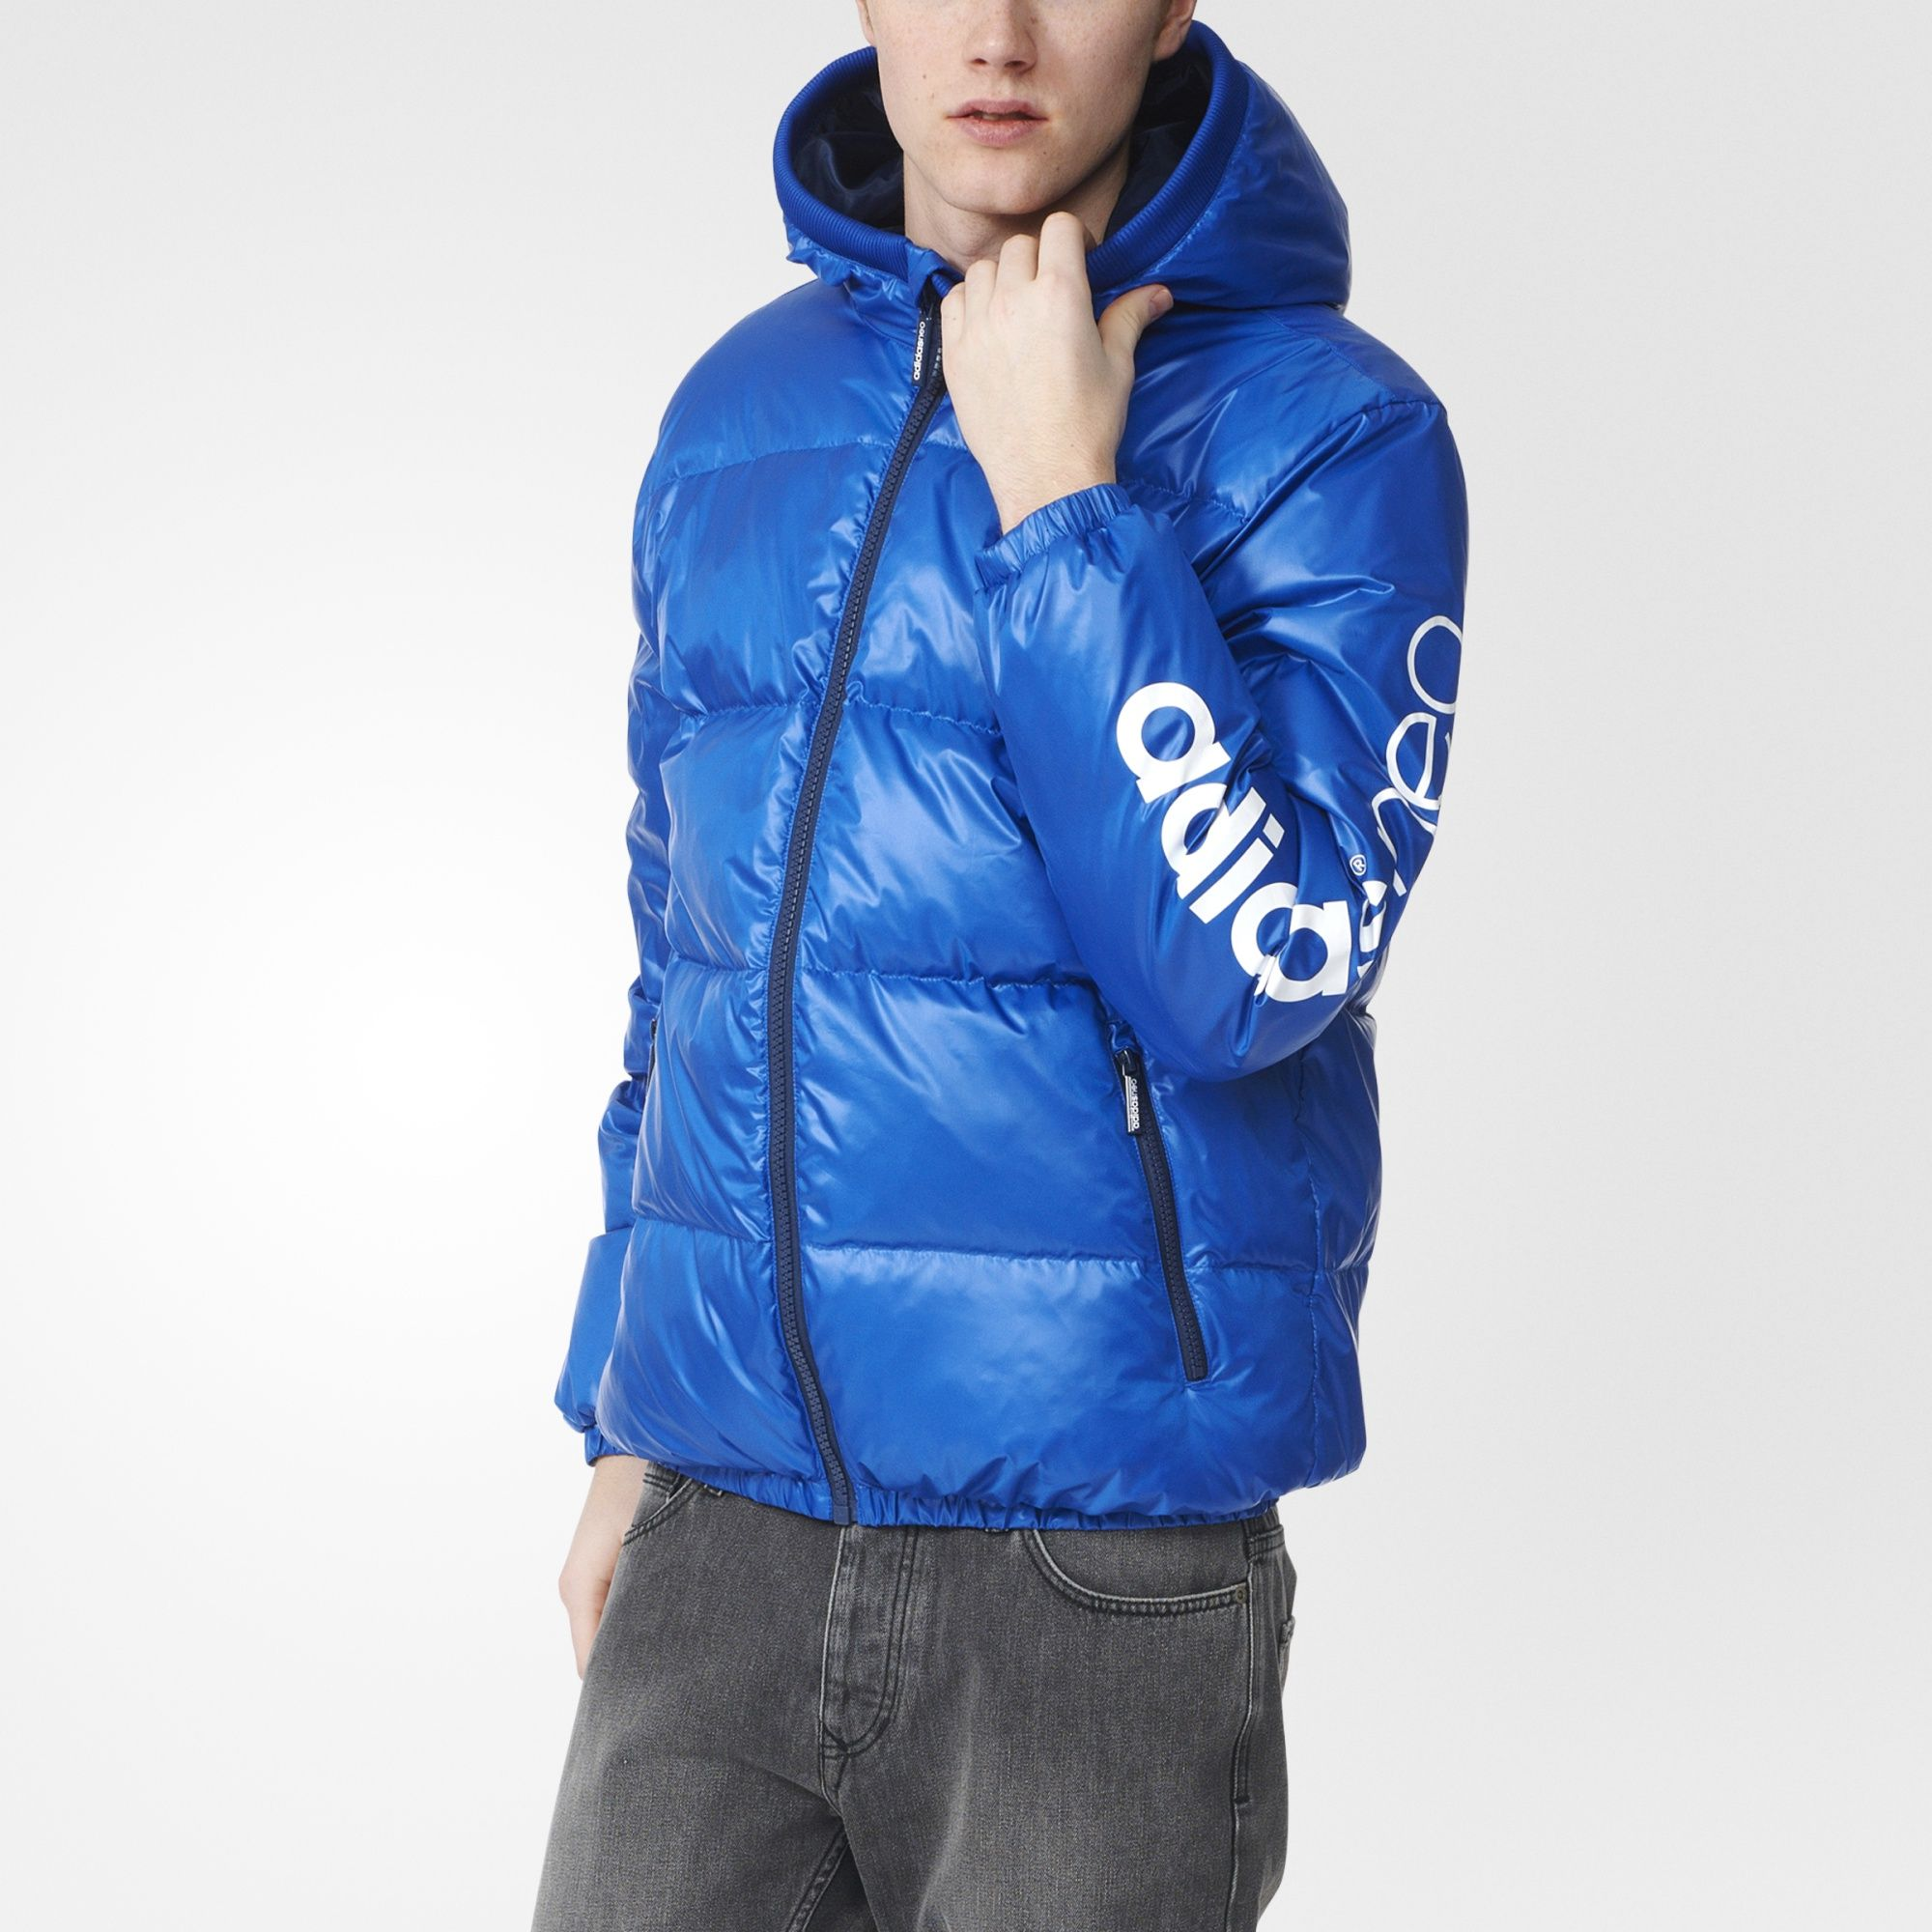 Winter with adidas neo style. This guys' down jacket has a